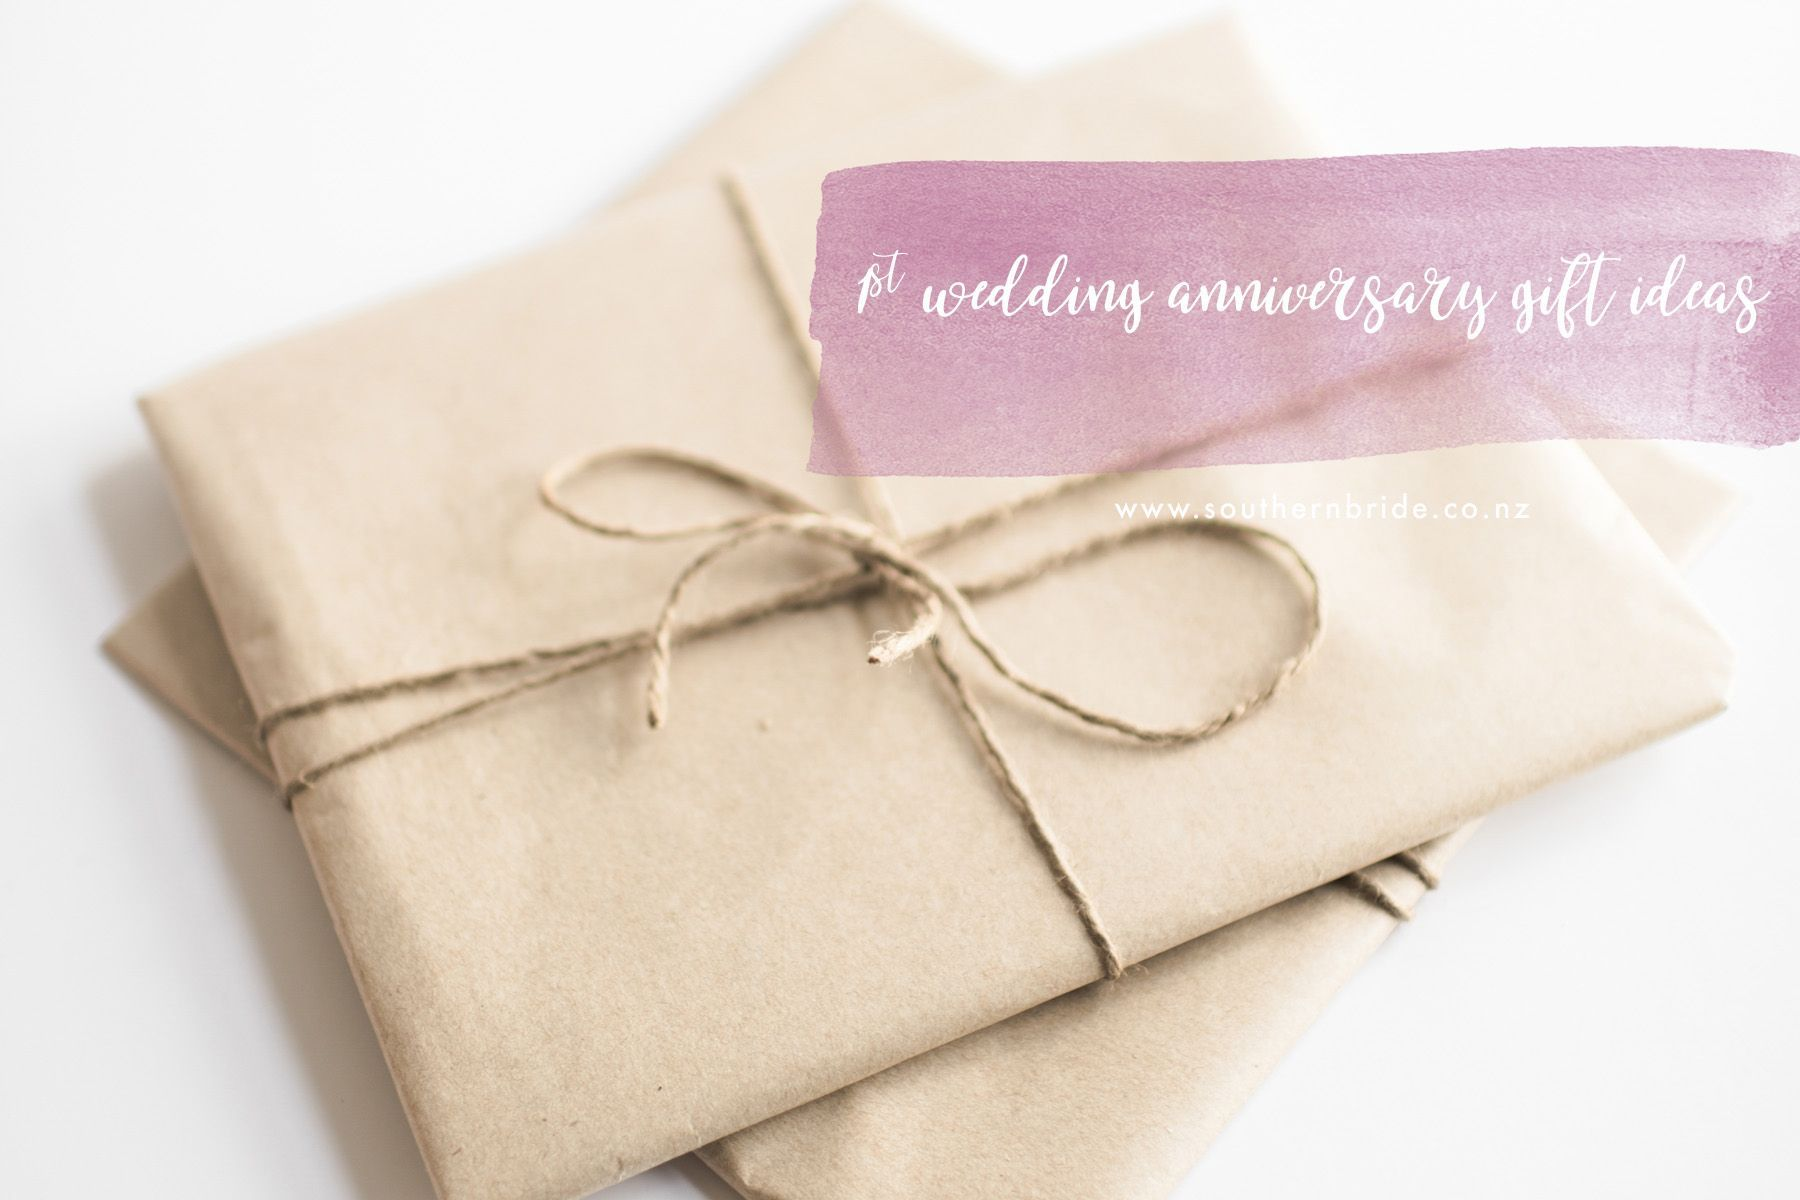 First Year Wedding Anniversary Gifts For Husband Nz Anniversary Gifts Husban In 2020 Wedding Anniversary Gifts First Wedding Anniversary Gift 1st Wedding Anniversary